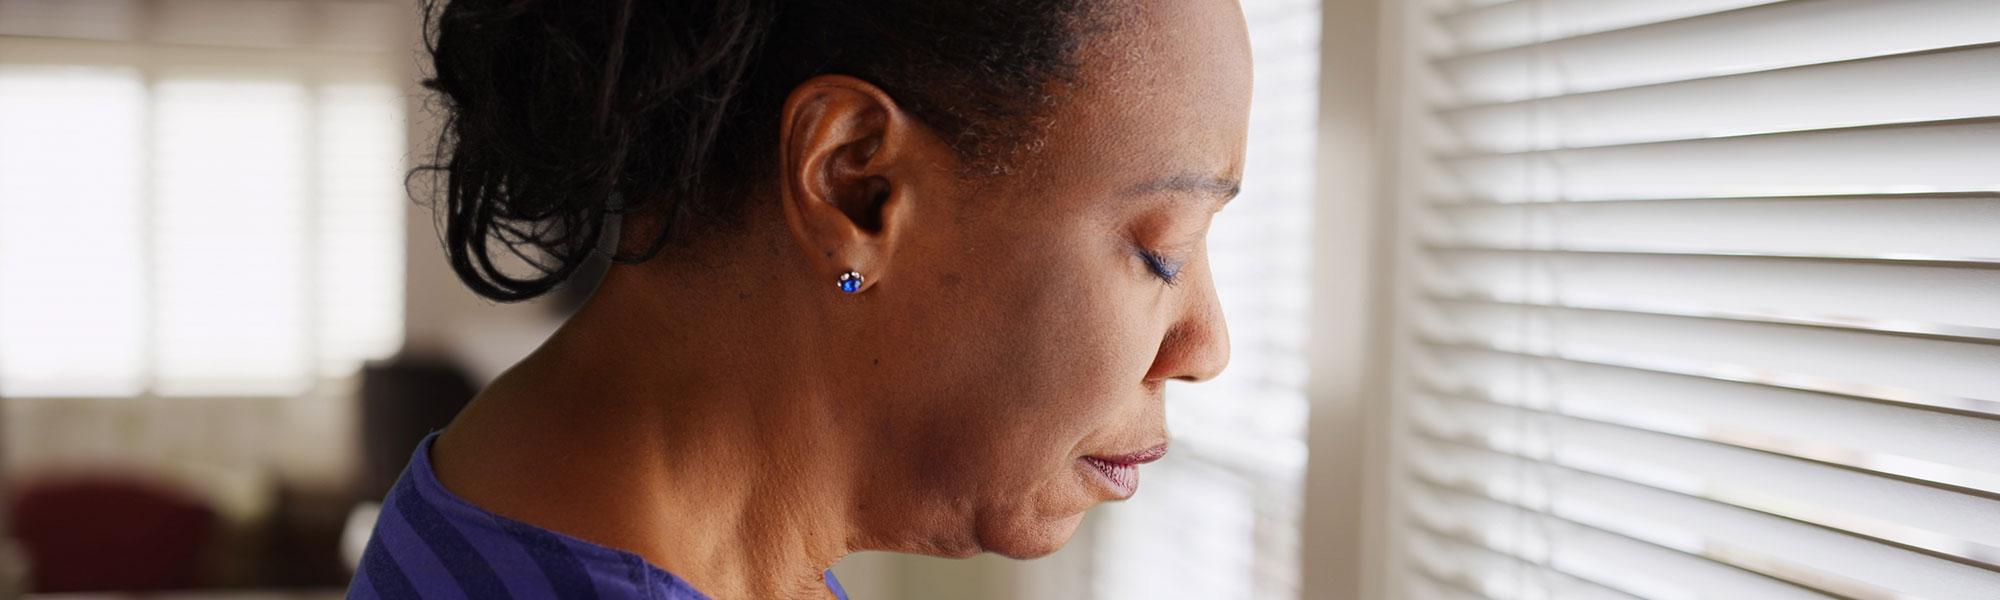 Widows Face Isolation. Learn Coping Strategies at Widowlution.com